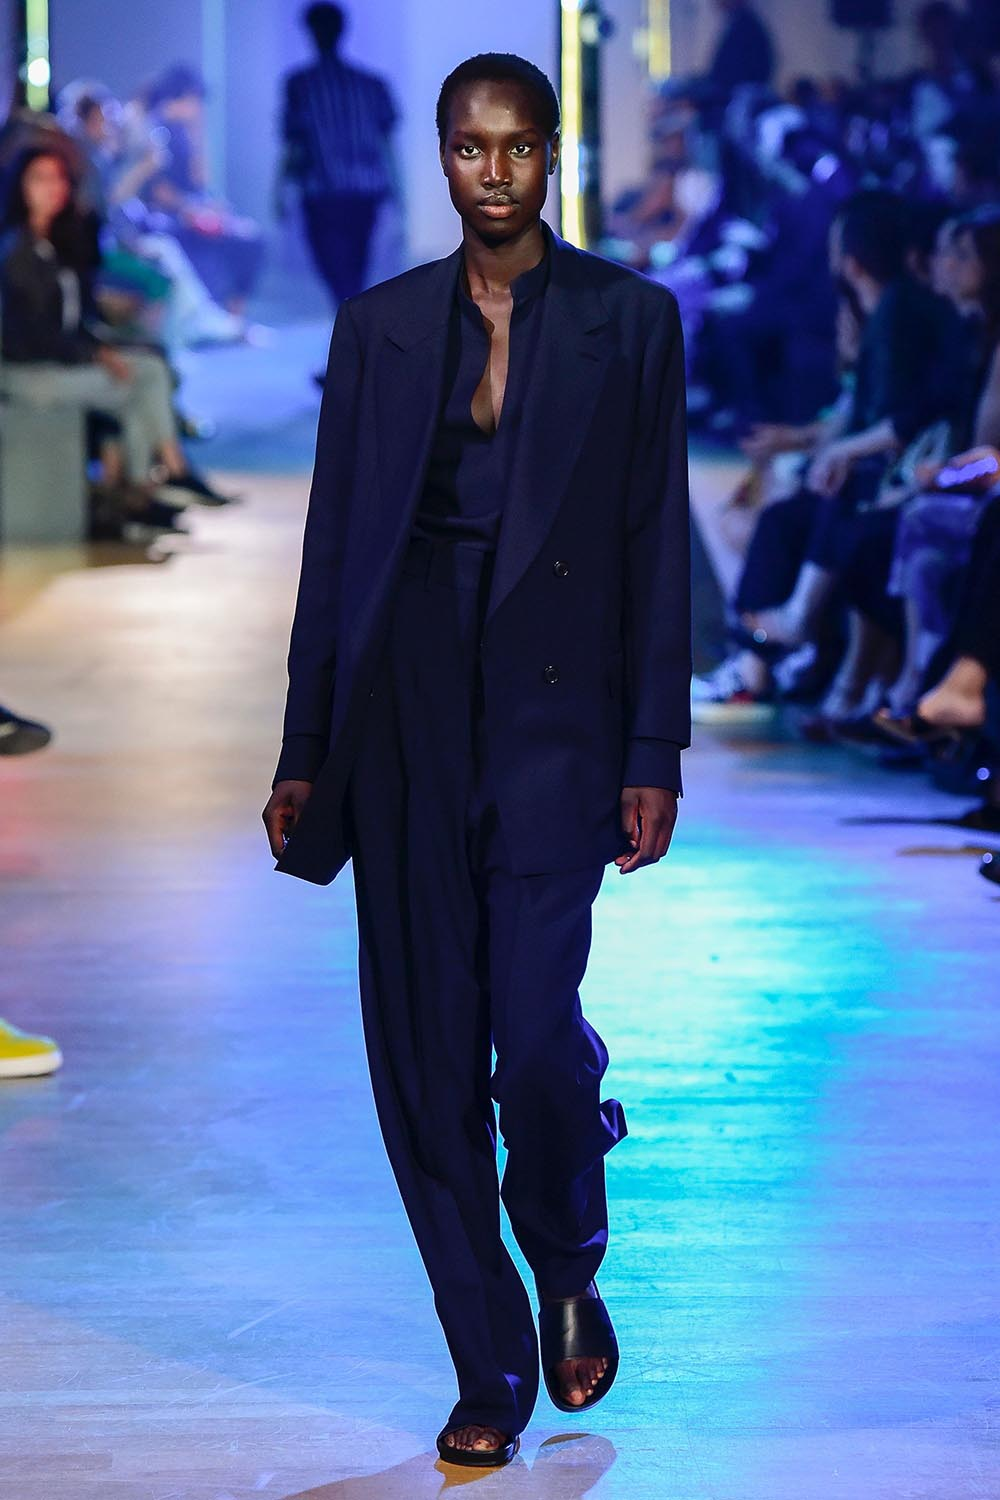 Cerruti 1881 Paris Fashion Week Men's SS19 - Sagaboi - Look 38